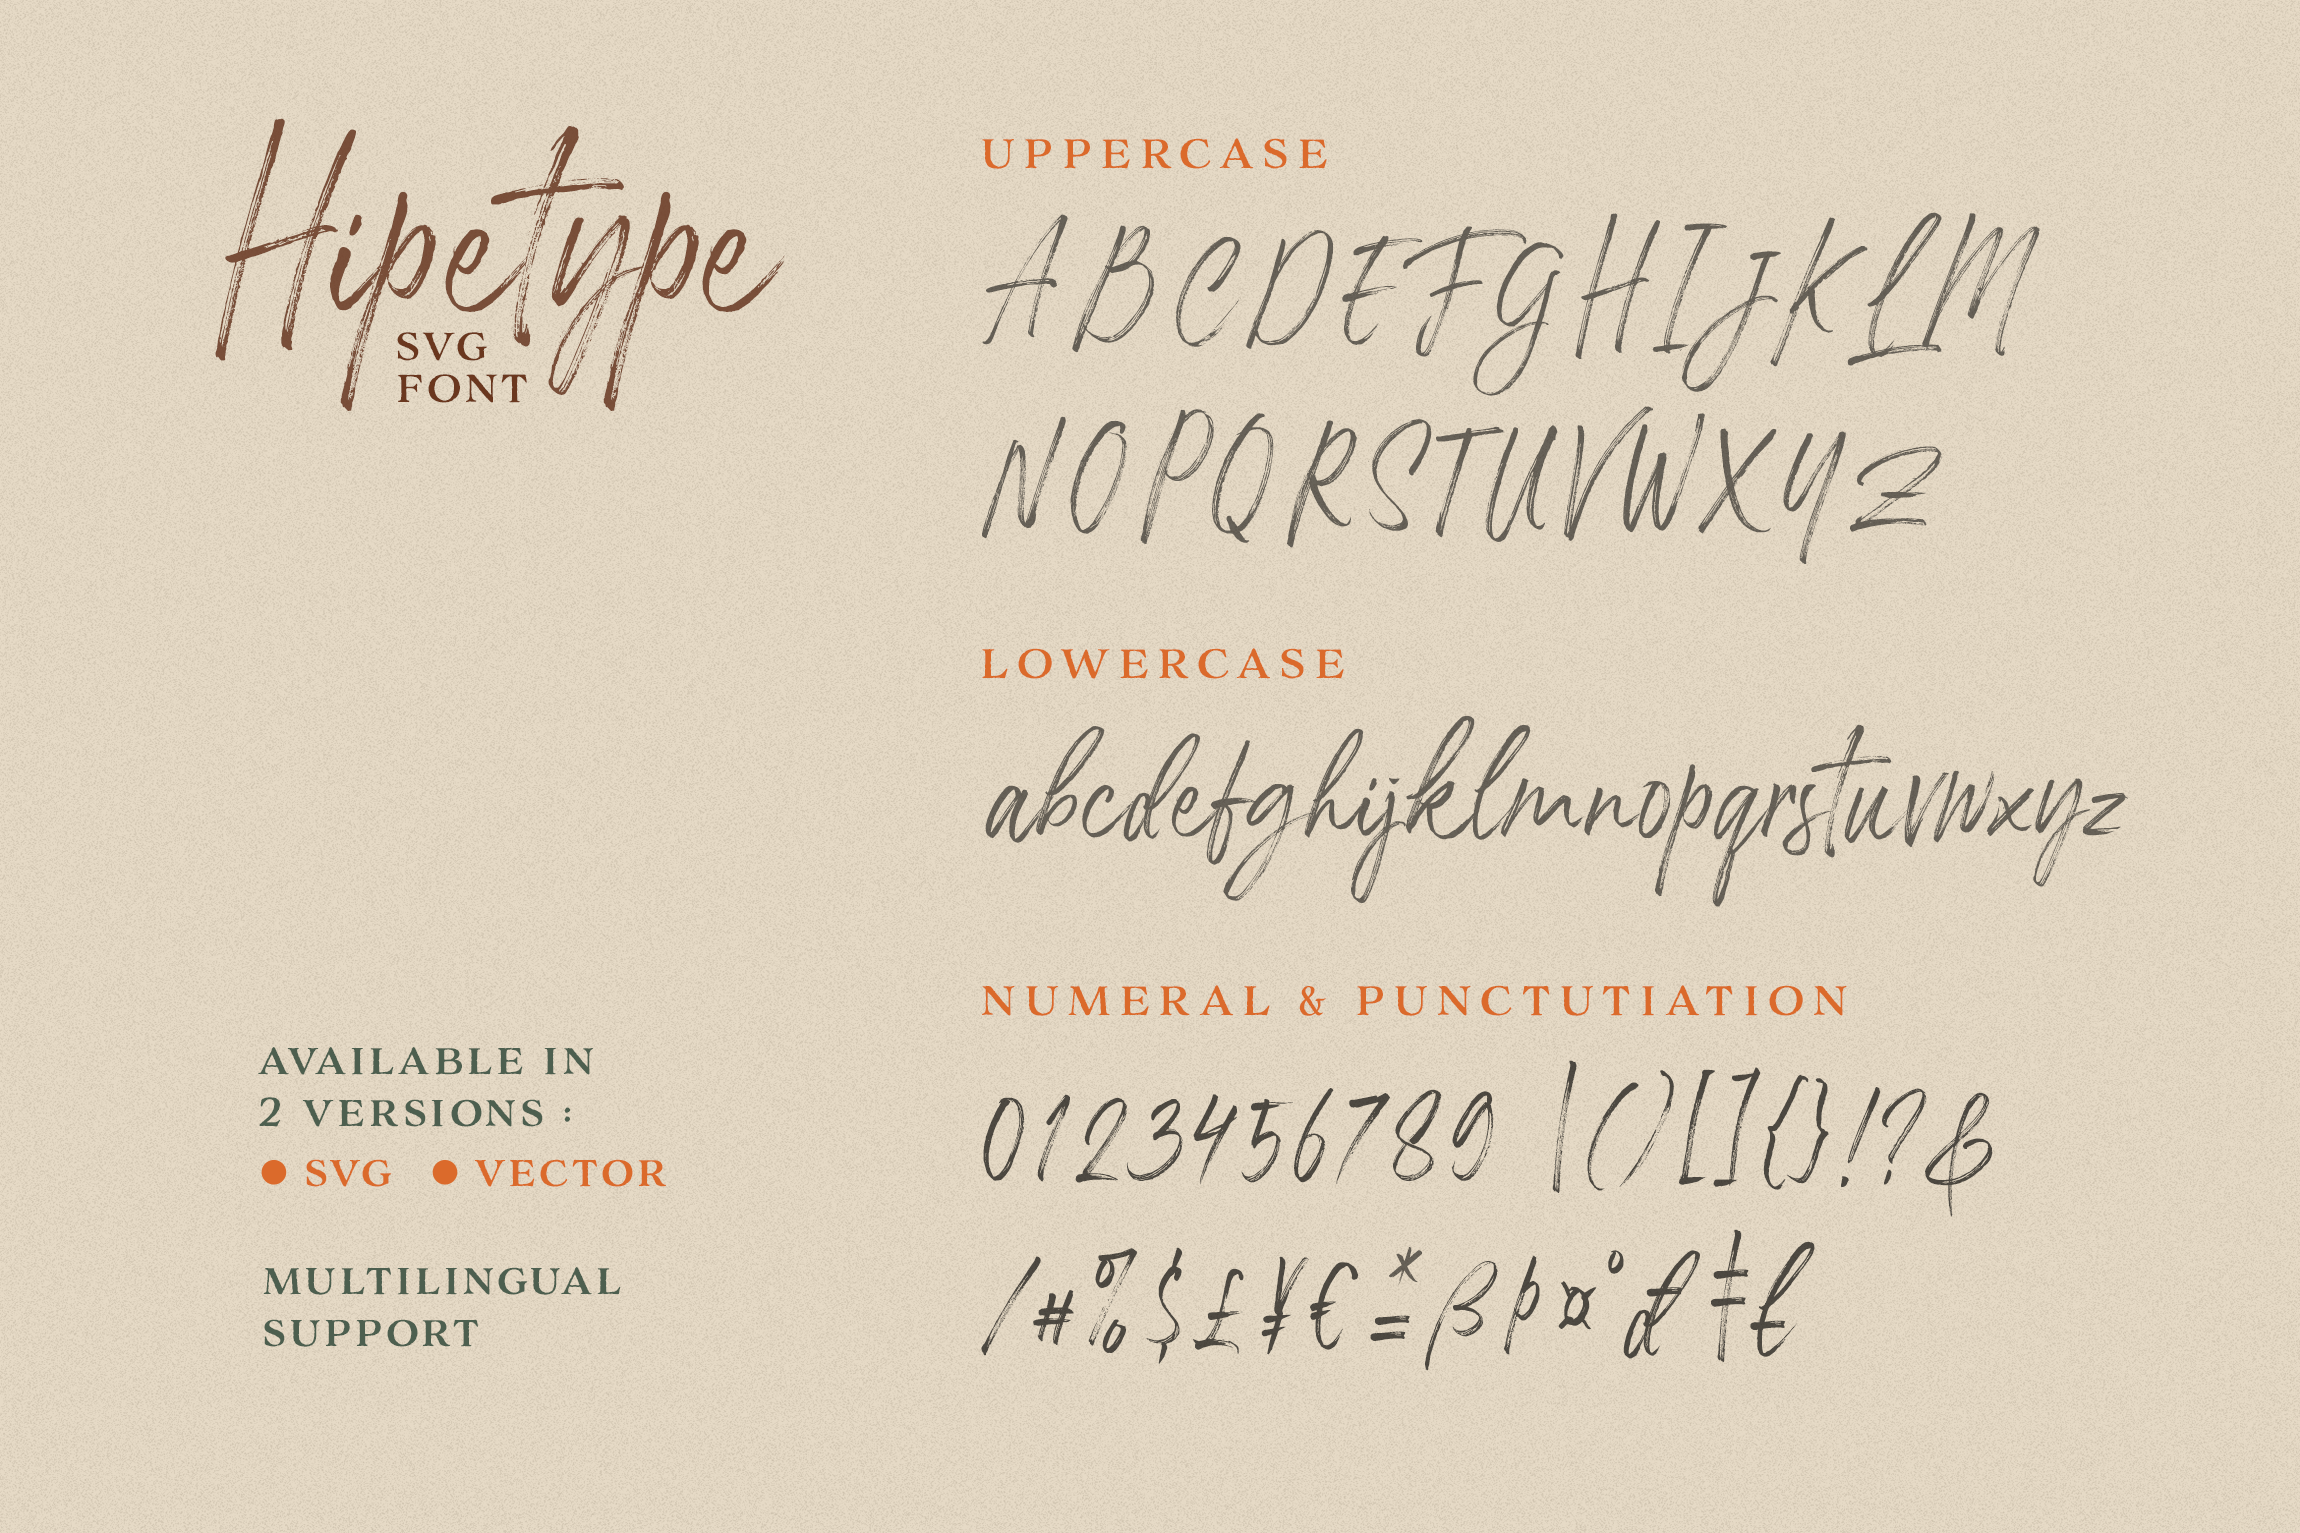 Hipetype SVG Font example image 9